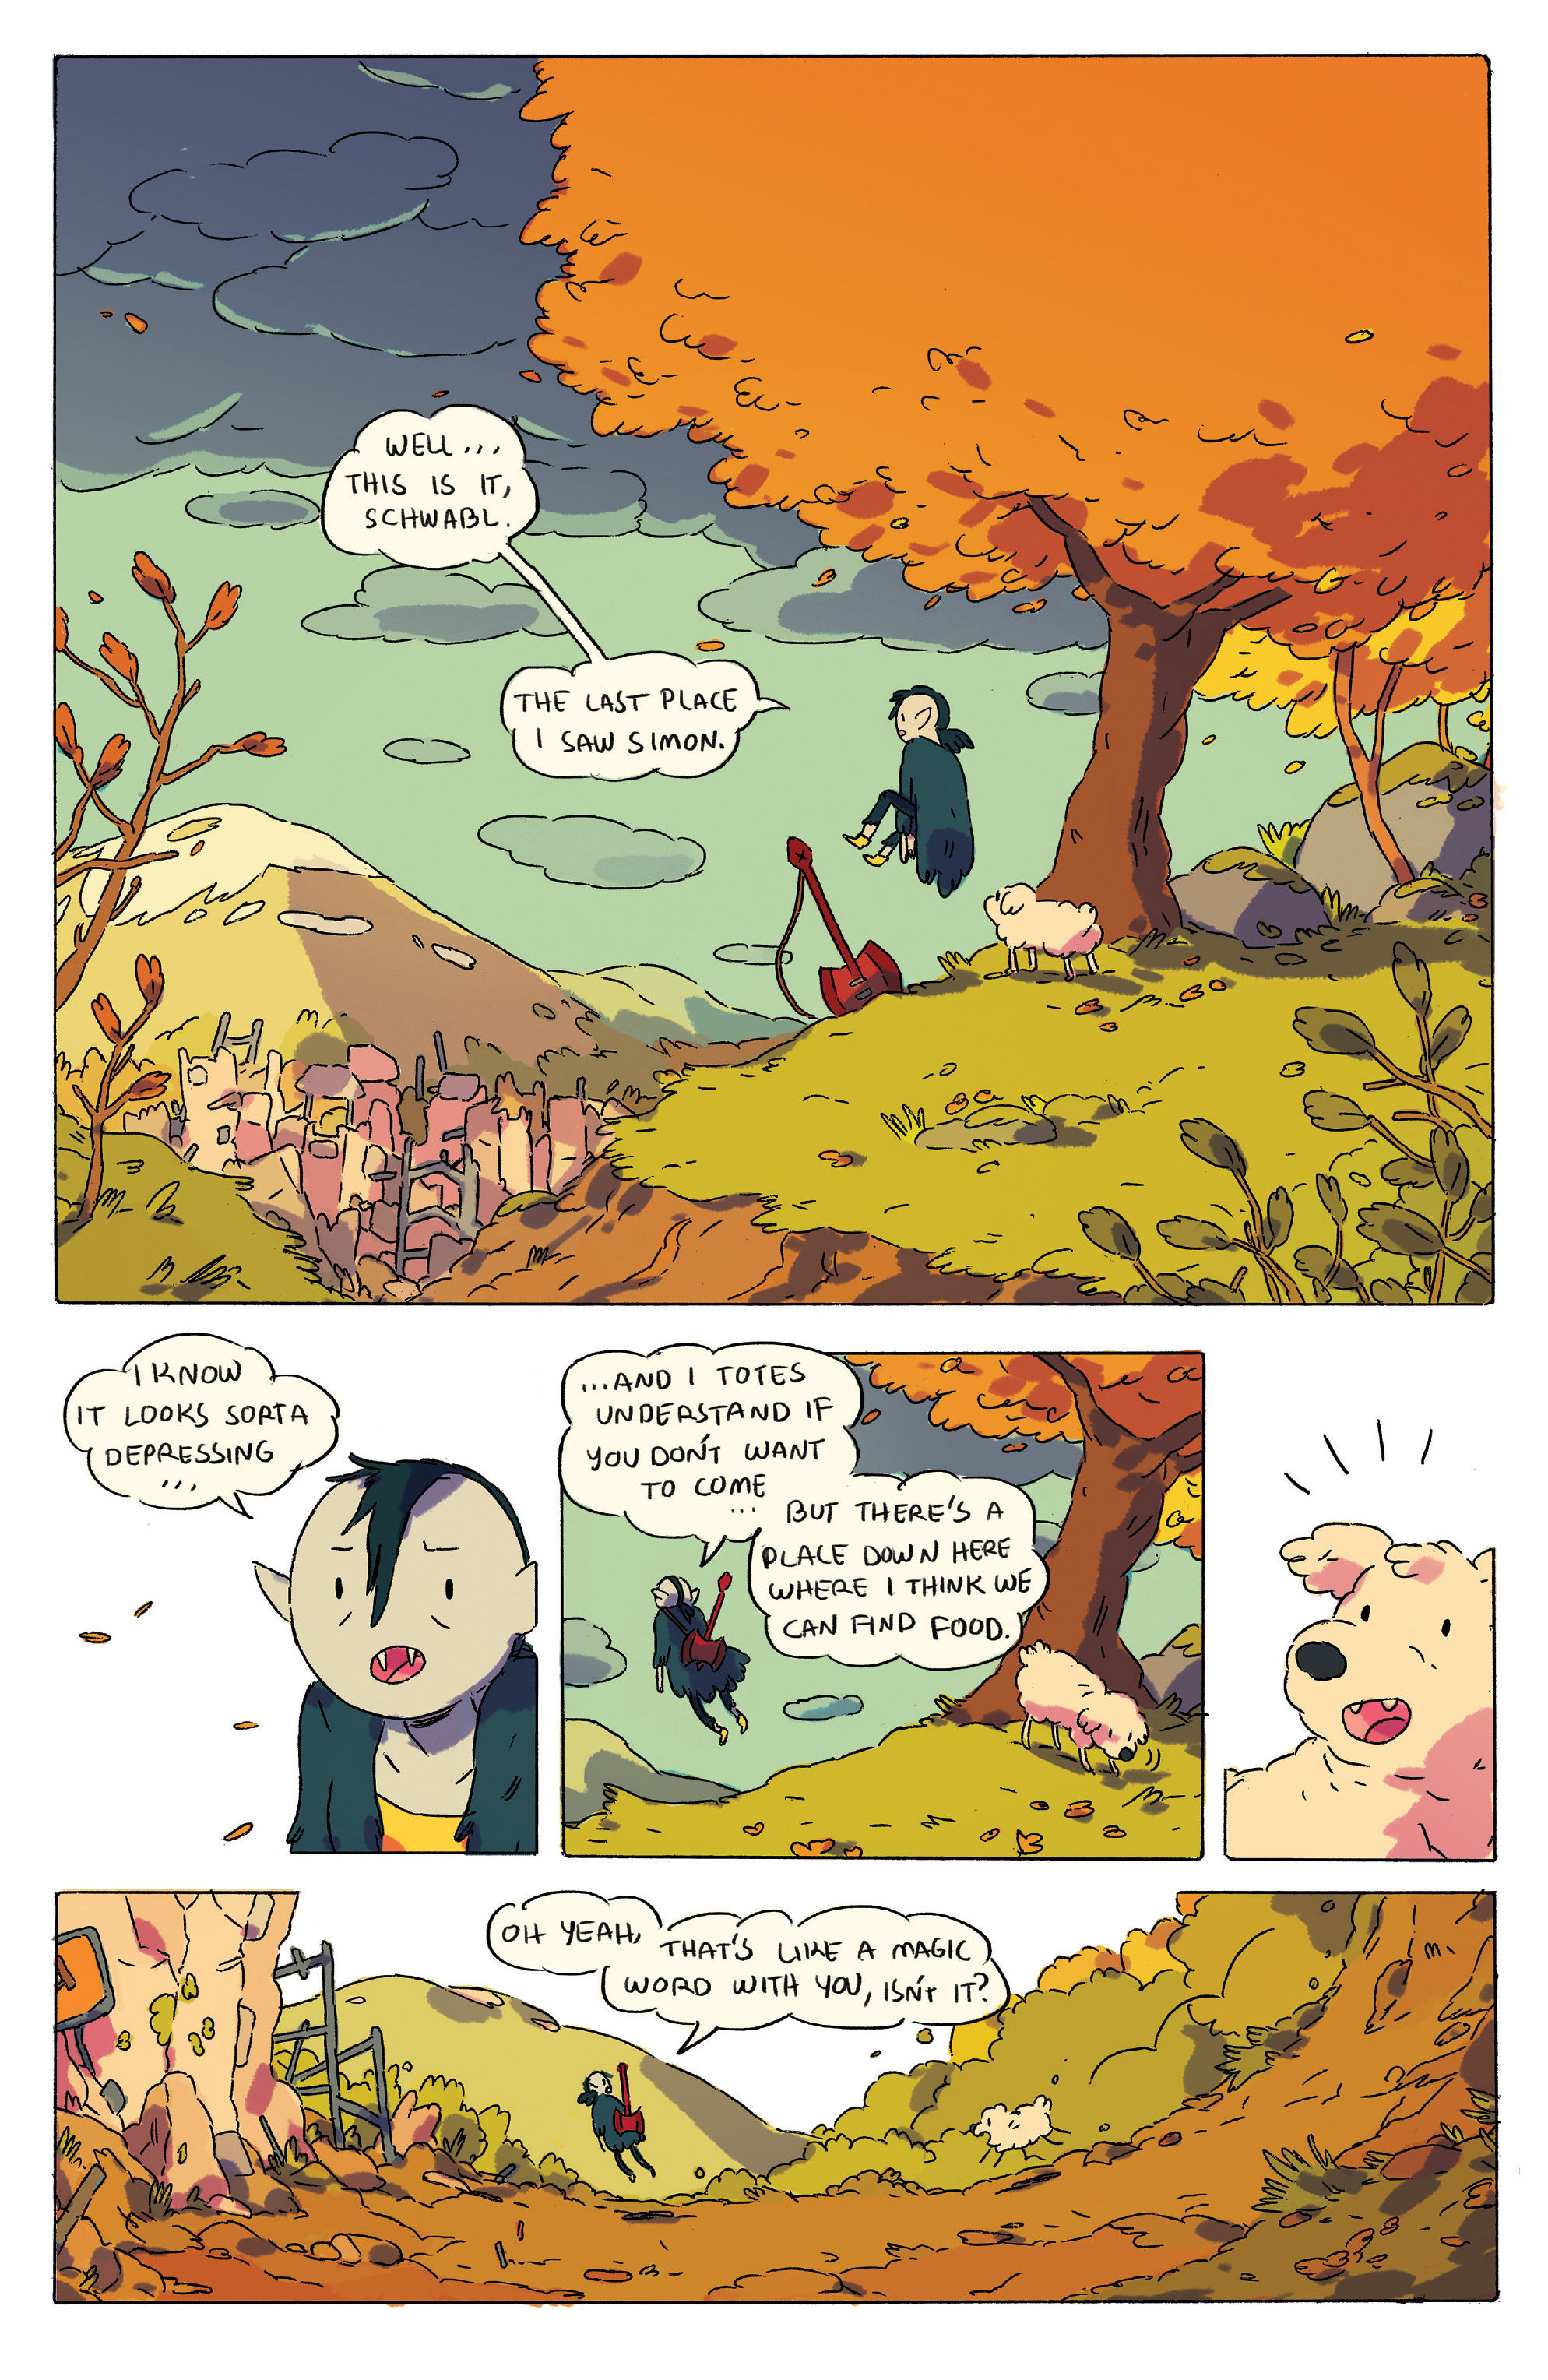 Read online Adventure Time comic -  Issue # _2015 Spoooktacular - 3